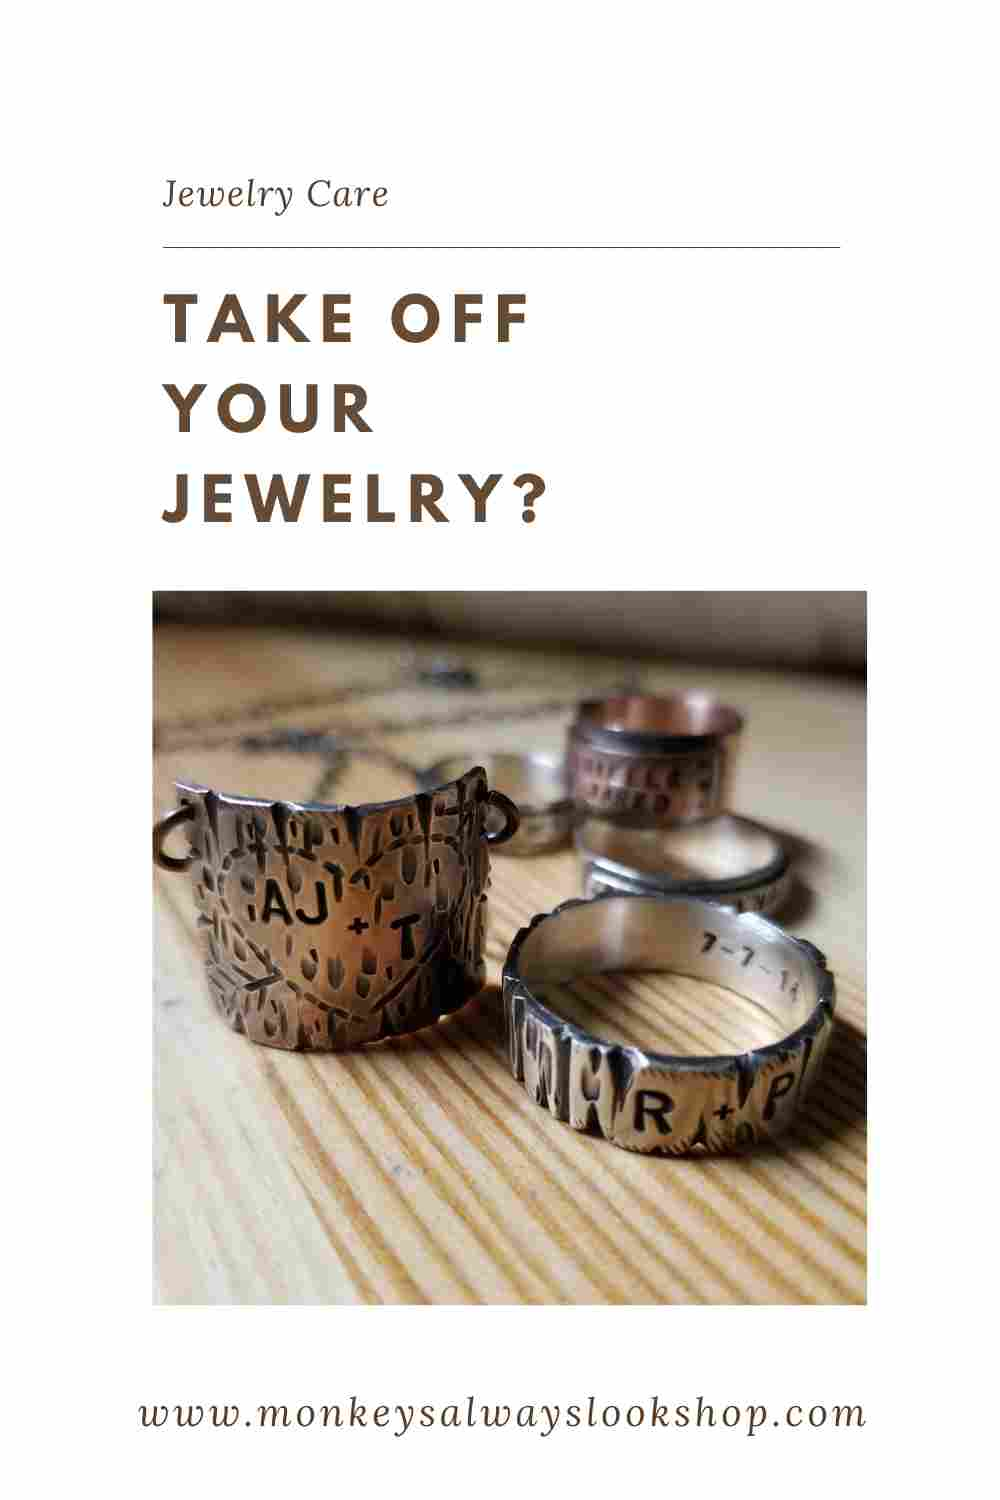 Take off your jewelry?